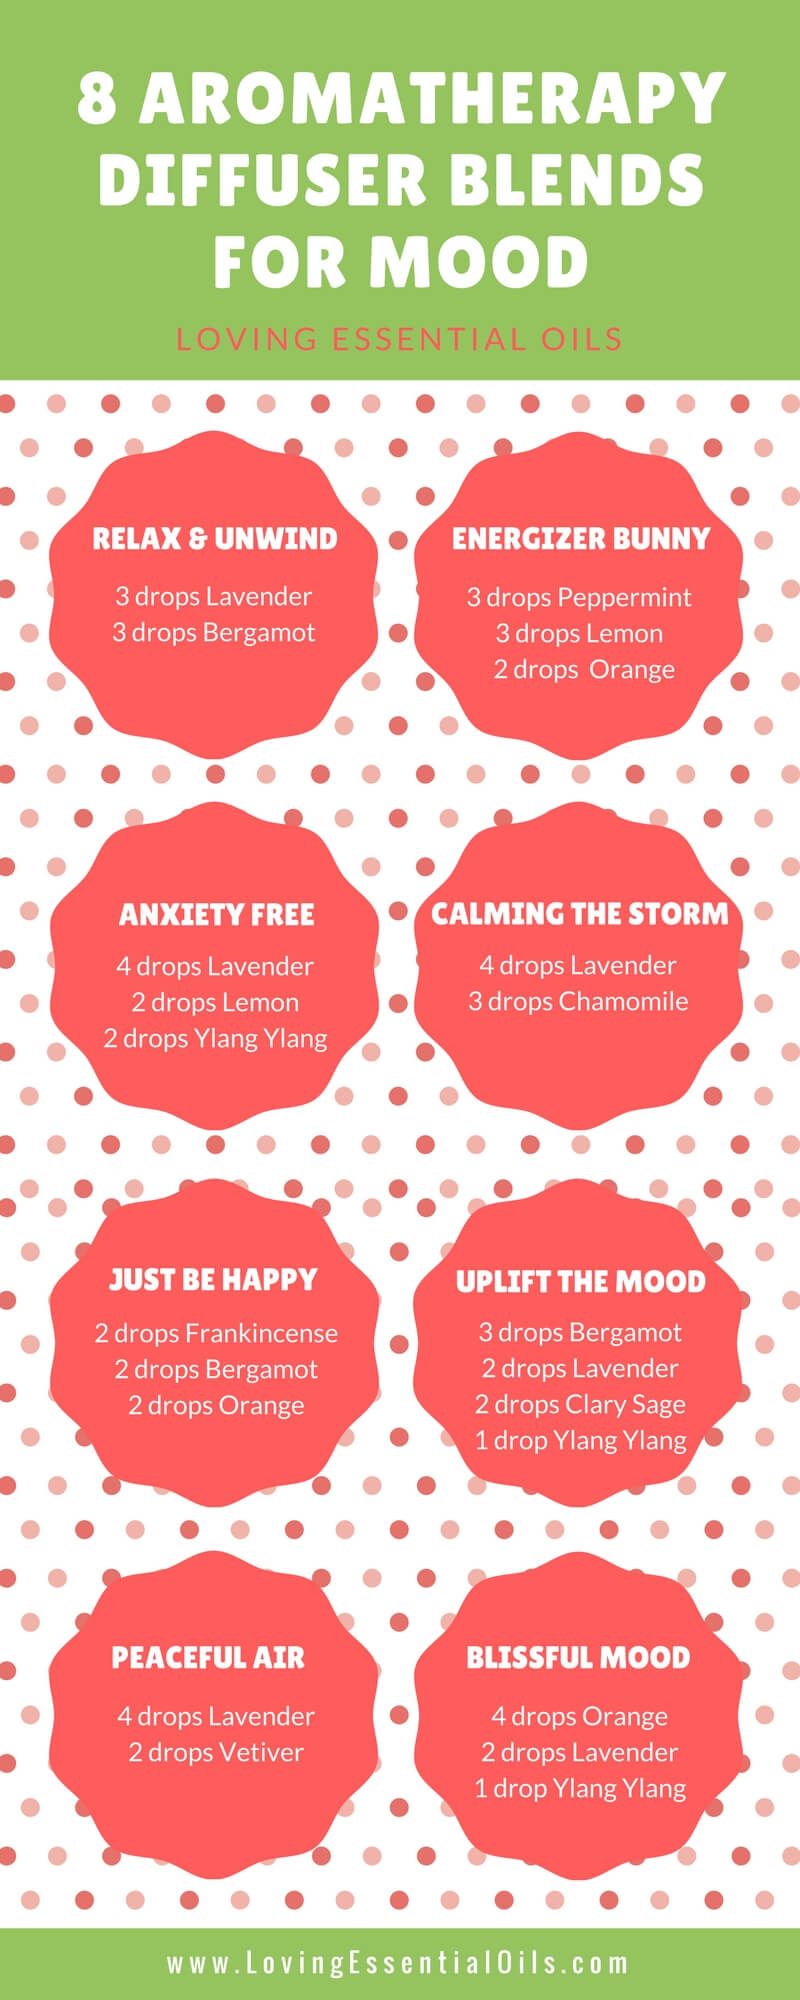 Essential Oils For Mood Lifting 8 Aromatherapy Diffuser Blends